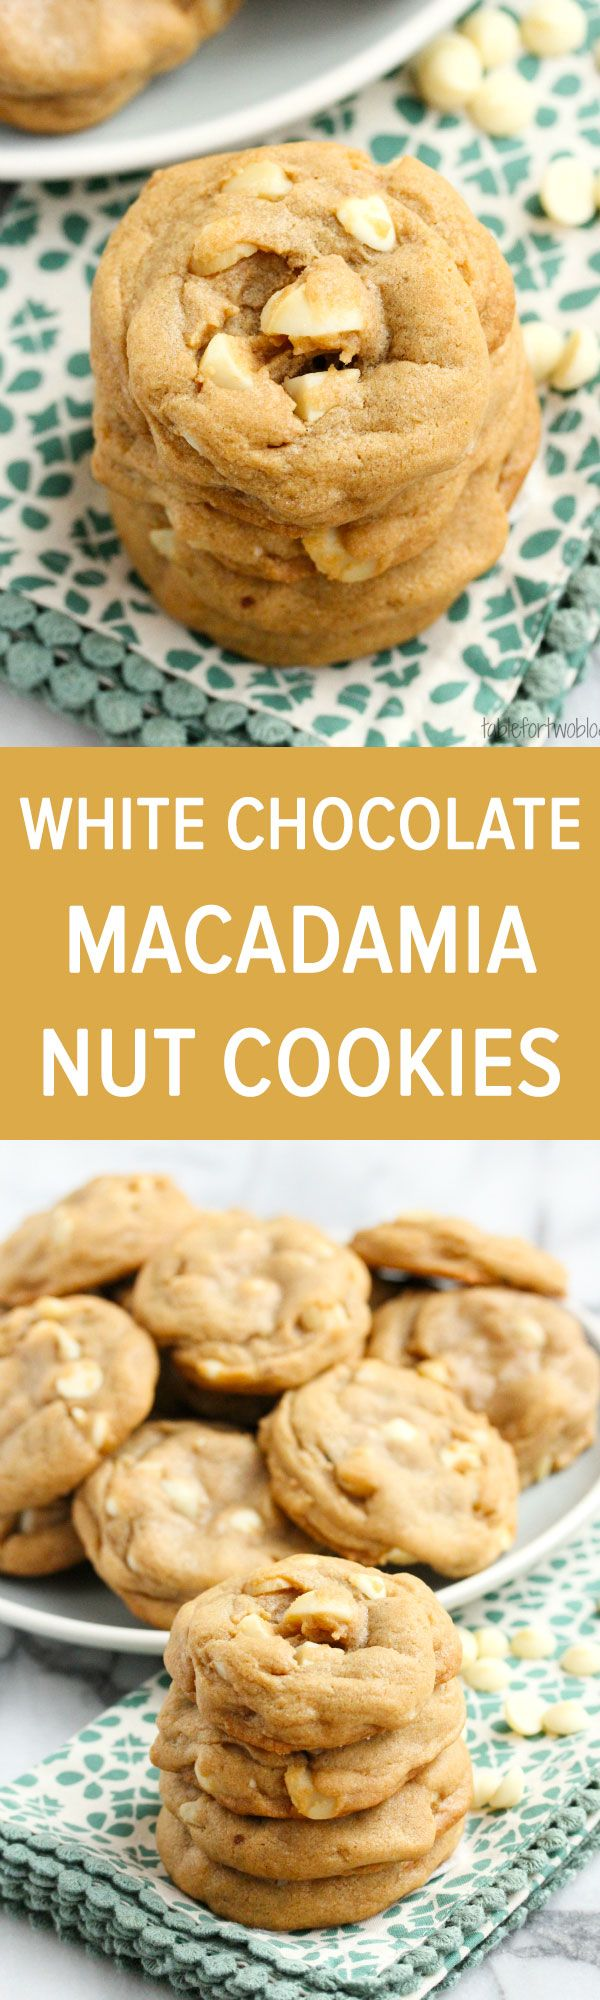 187 best images about !!Cookies!! on Pinterest   Chip cookies ...